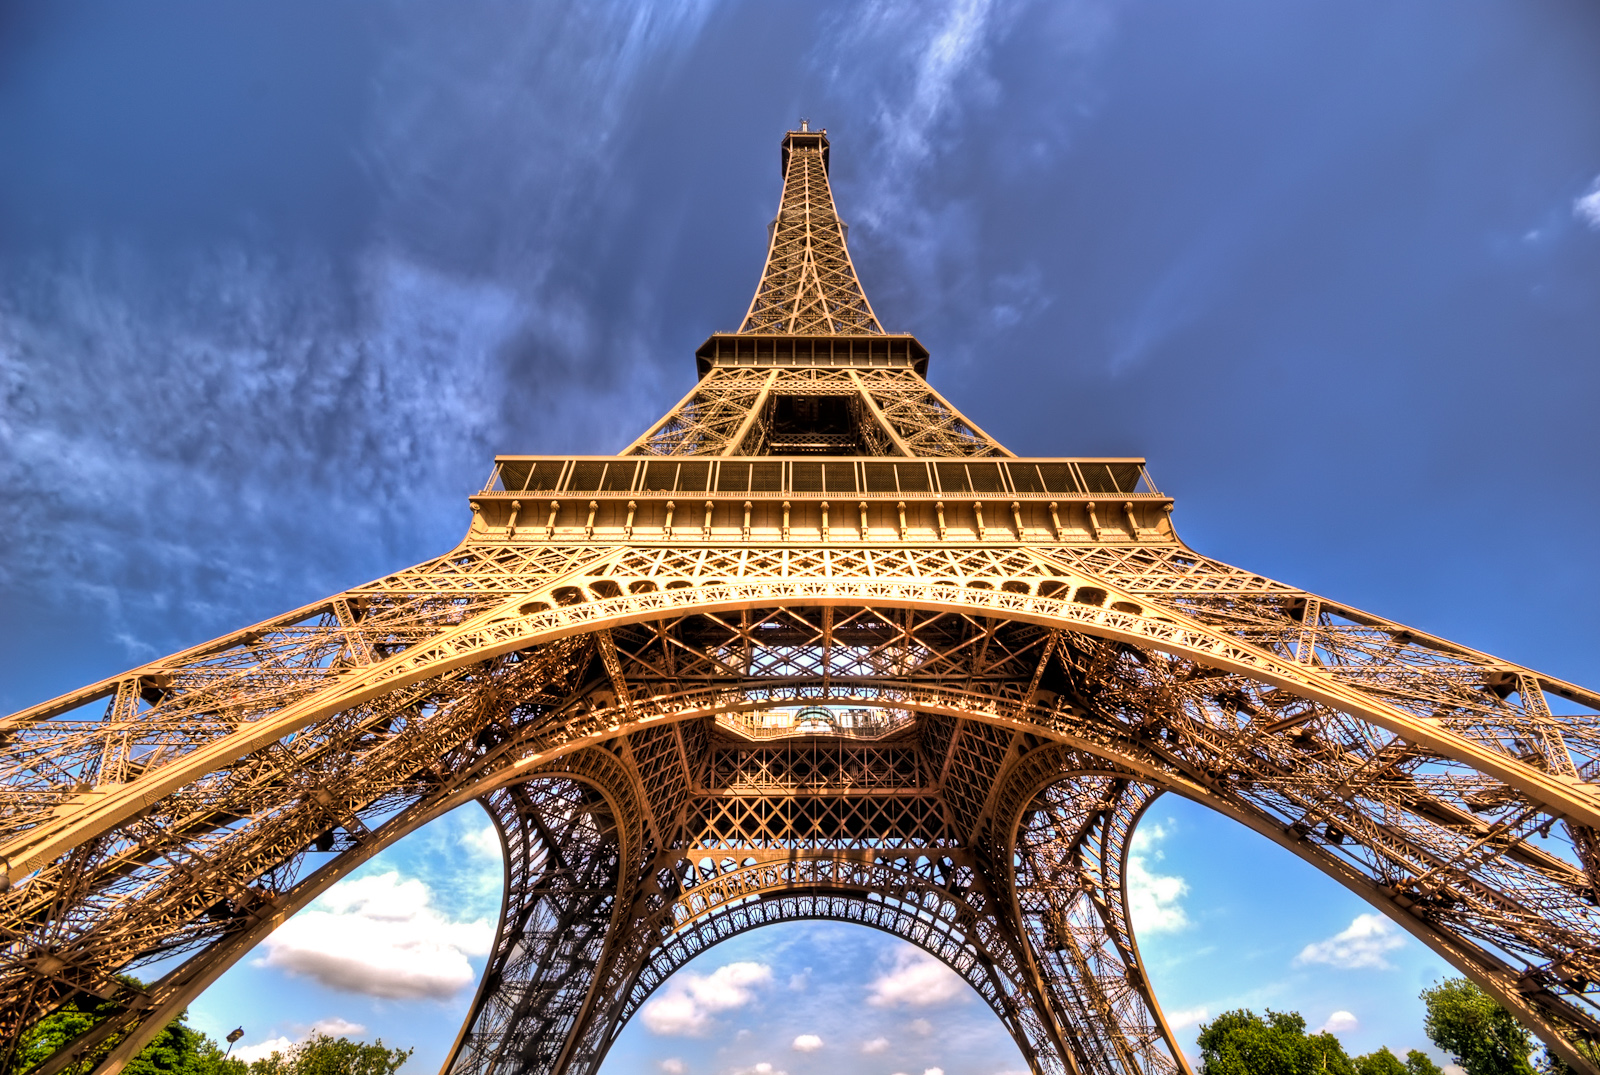 The Eiffel Tower opens doors to the public on May 6, 1889